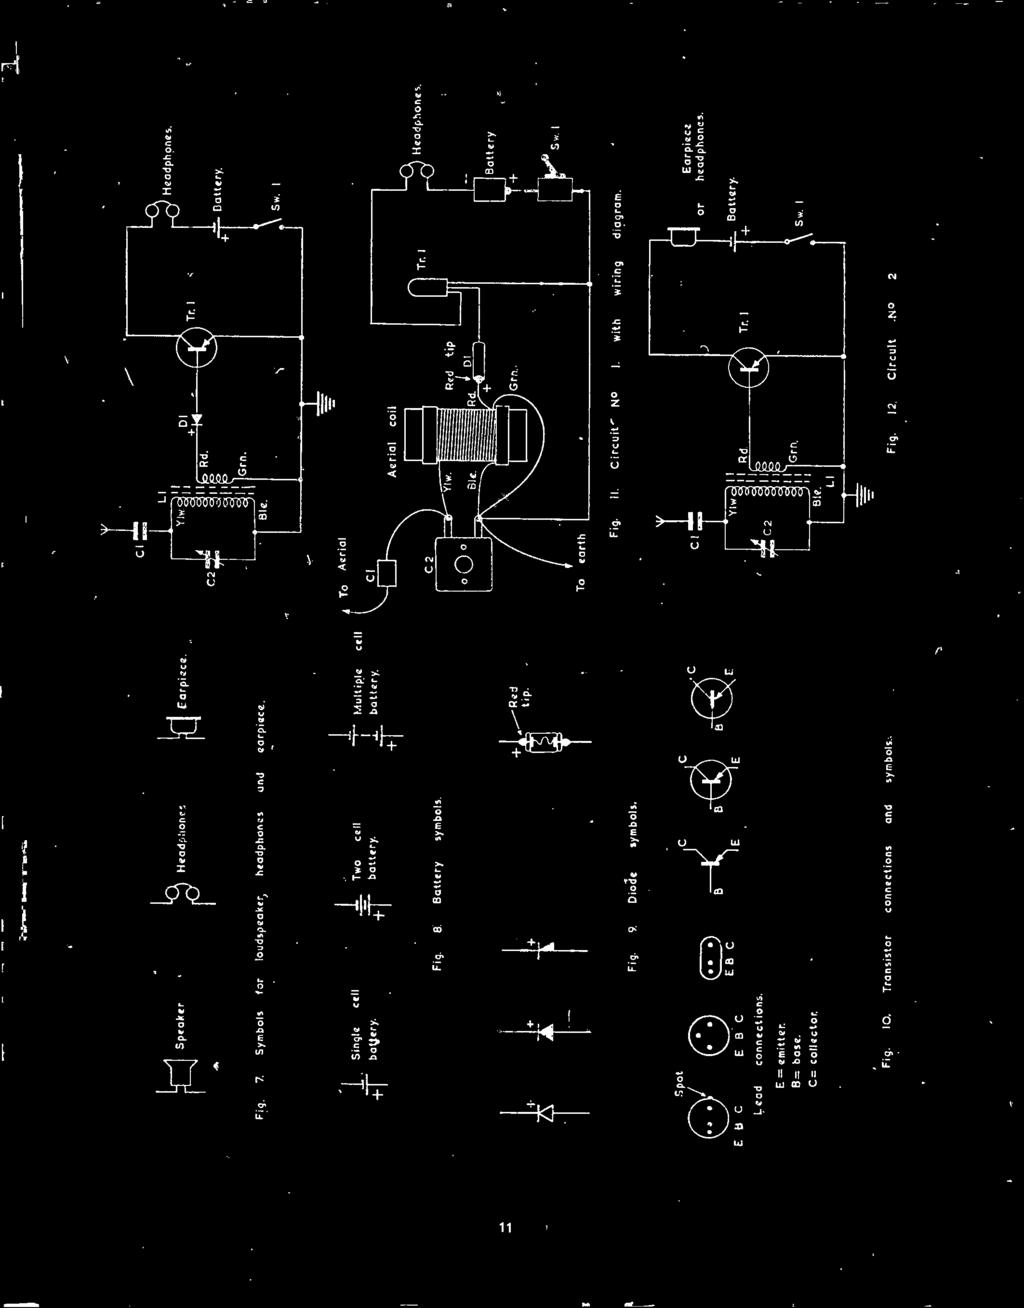 Il4 Bernards Radio Manuals Circuits For Modern Transistor Beginners Two Ic Am Kit With Training Course Model Am780k Electronic E 8 C Fig 10 Connections Arid Symbols